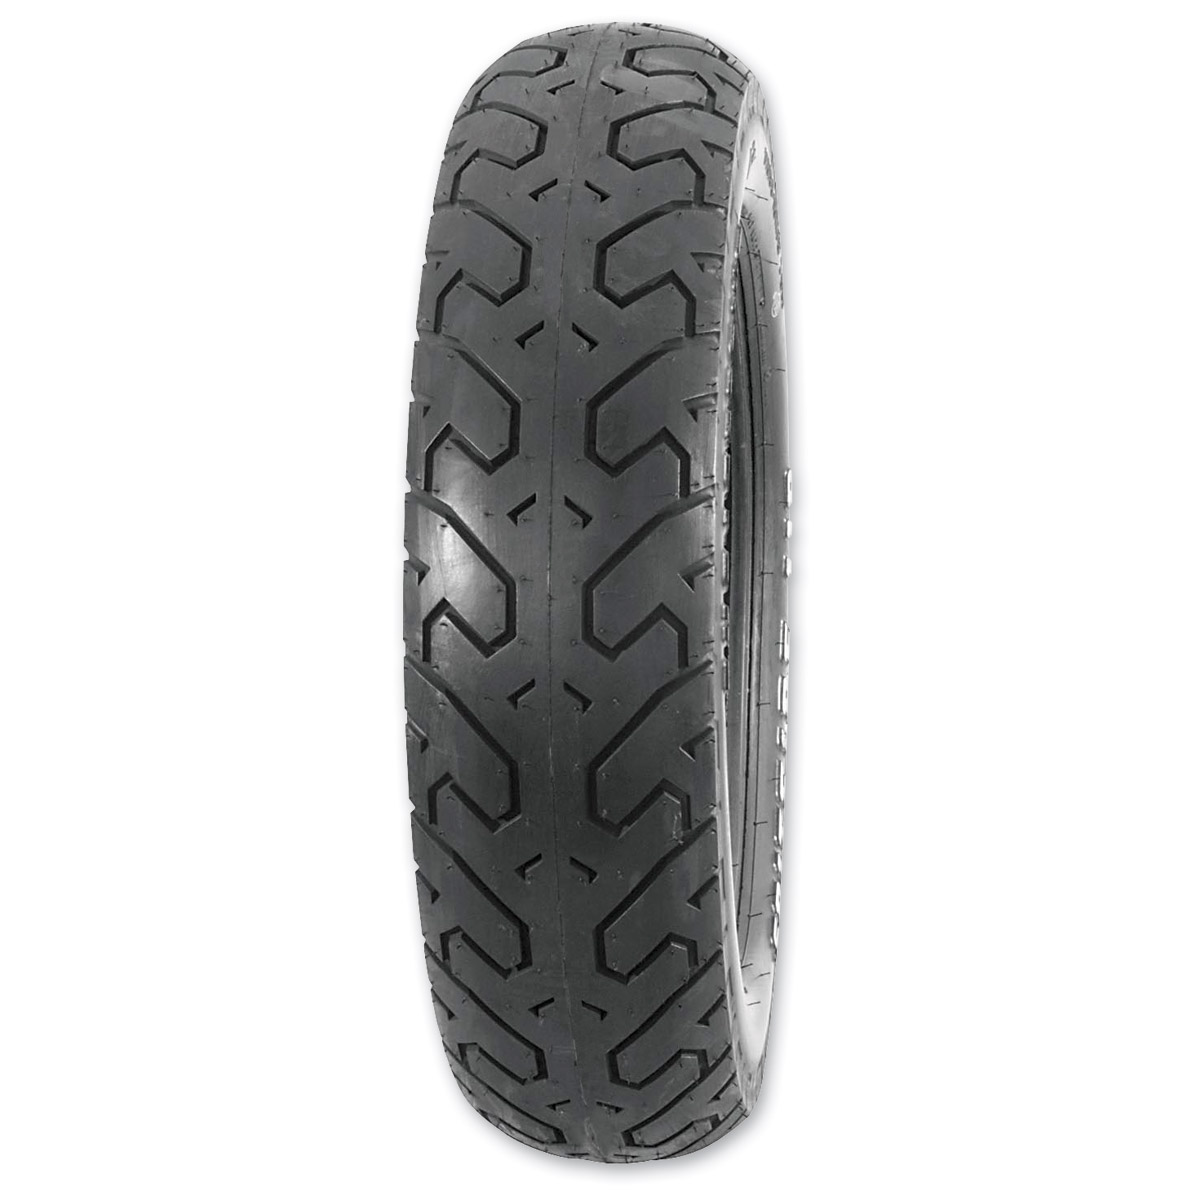 Bridgestone Spitfire S11 150/90-15 Rear Tire